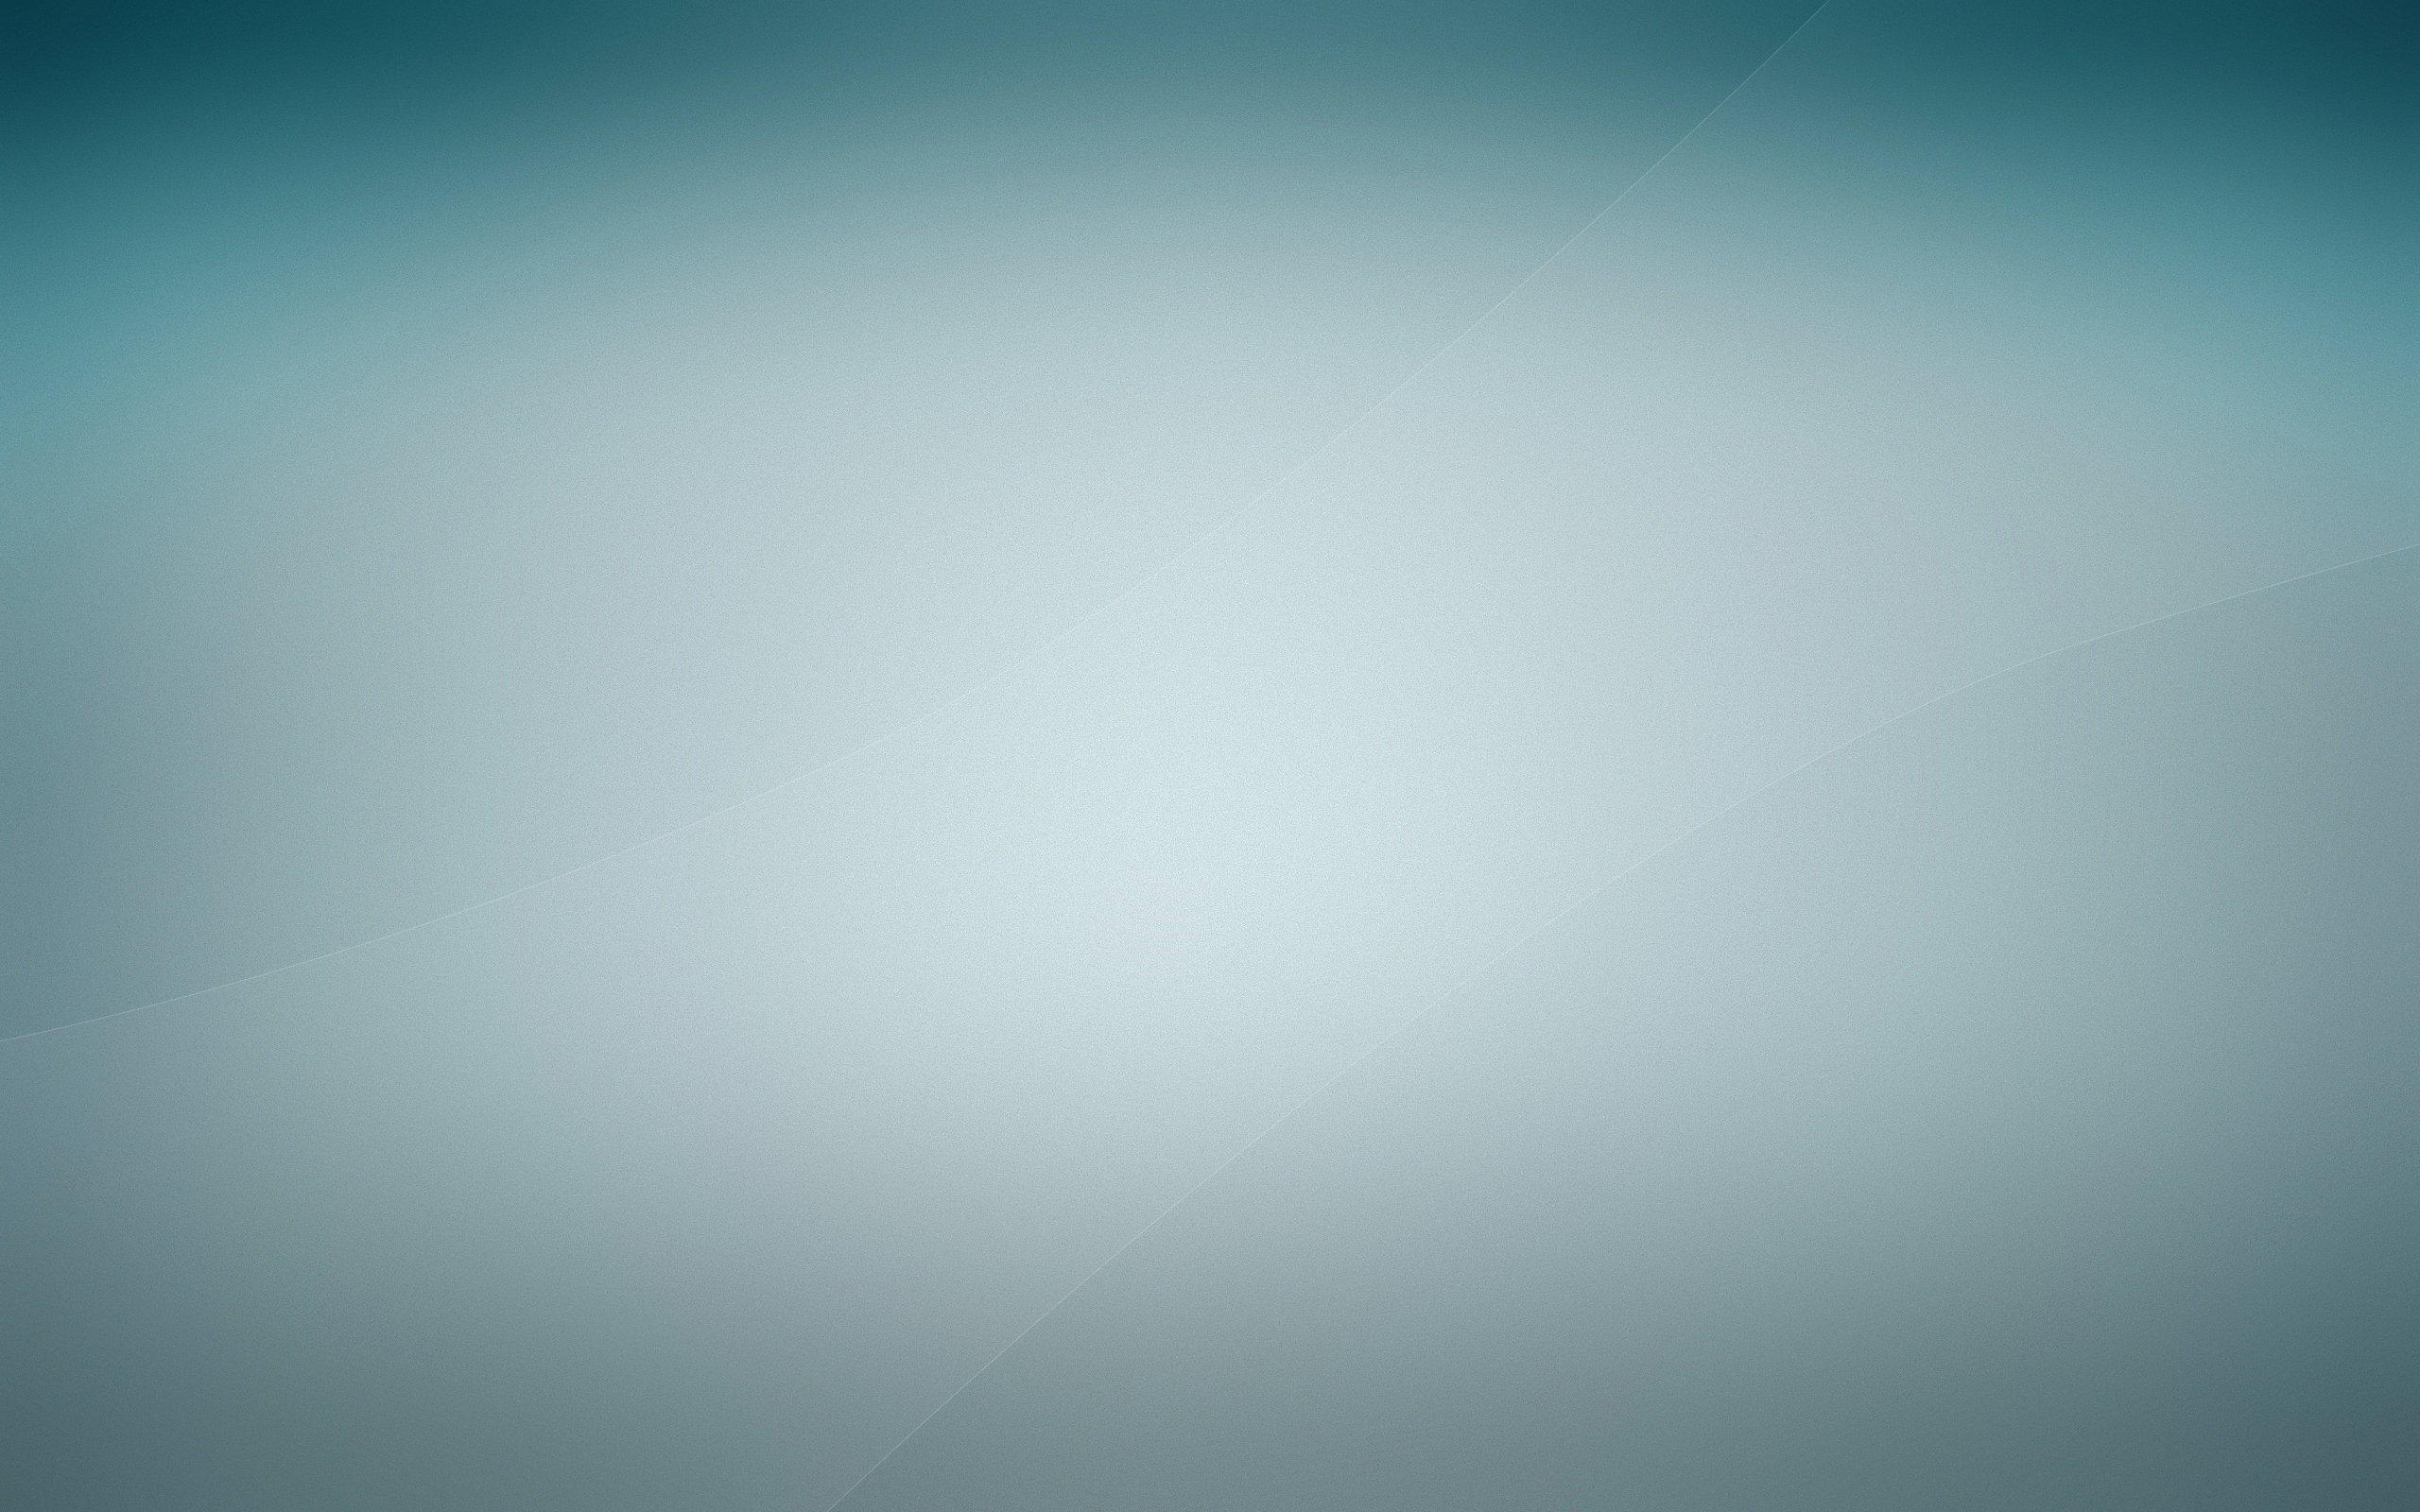 blue Textures gaussian blur HD Wallpaper